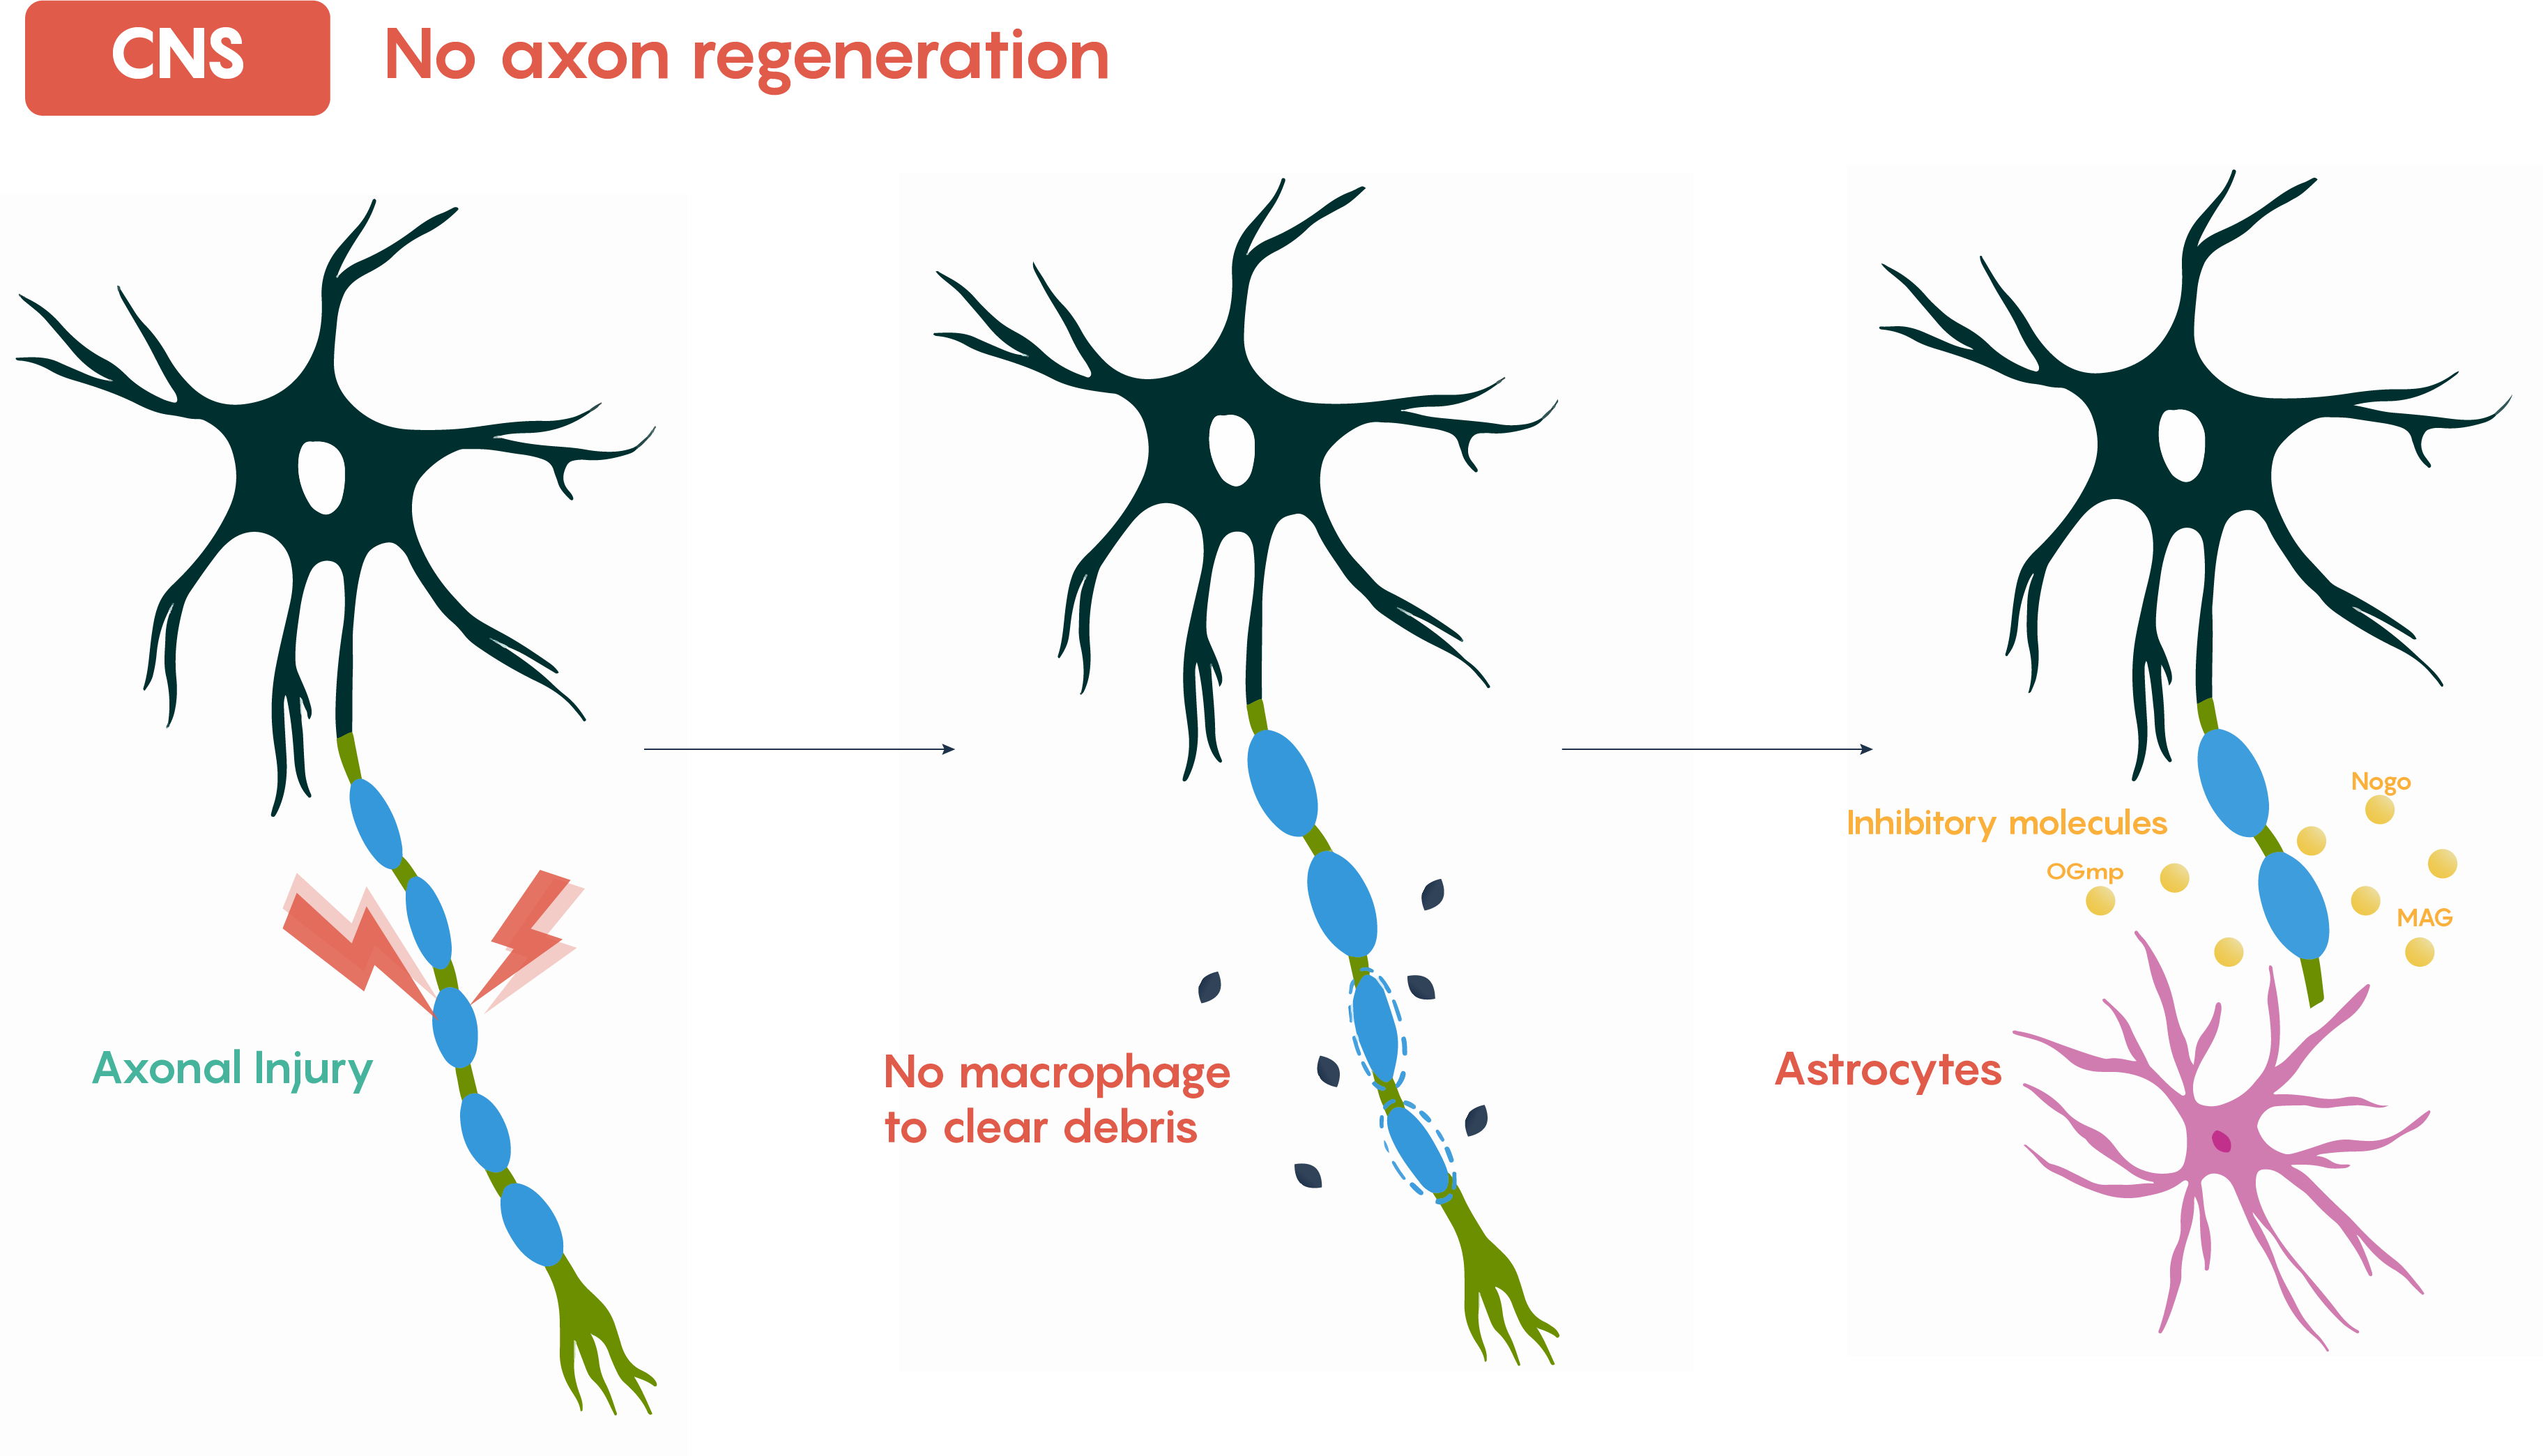 Image shows the lack of axonal regeneration in the CNS.